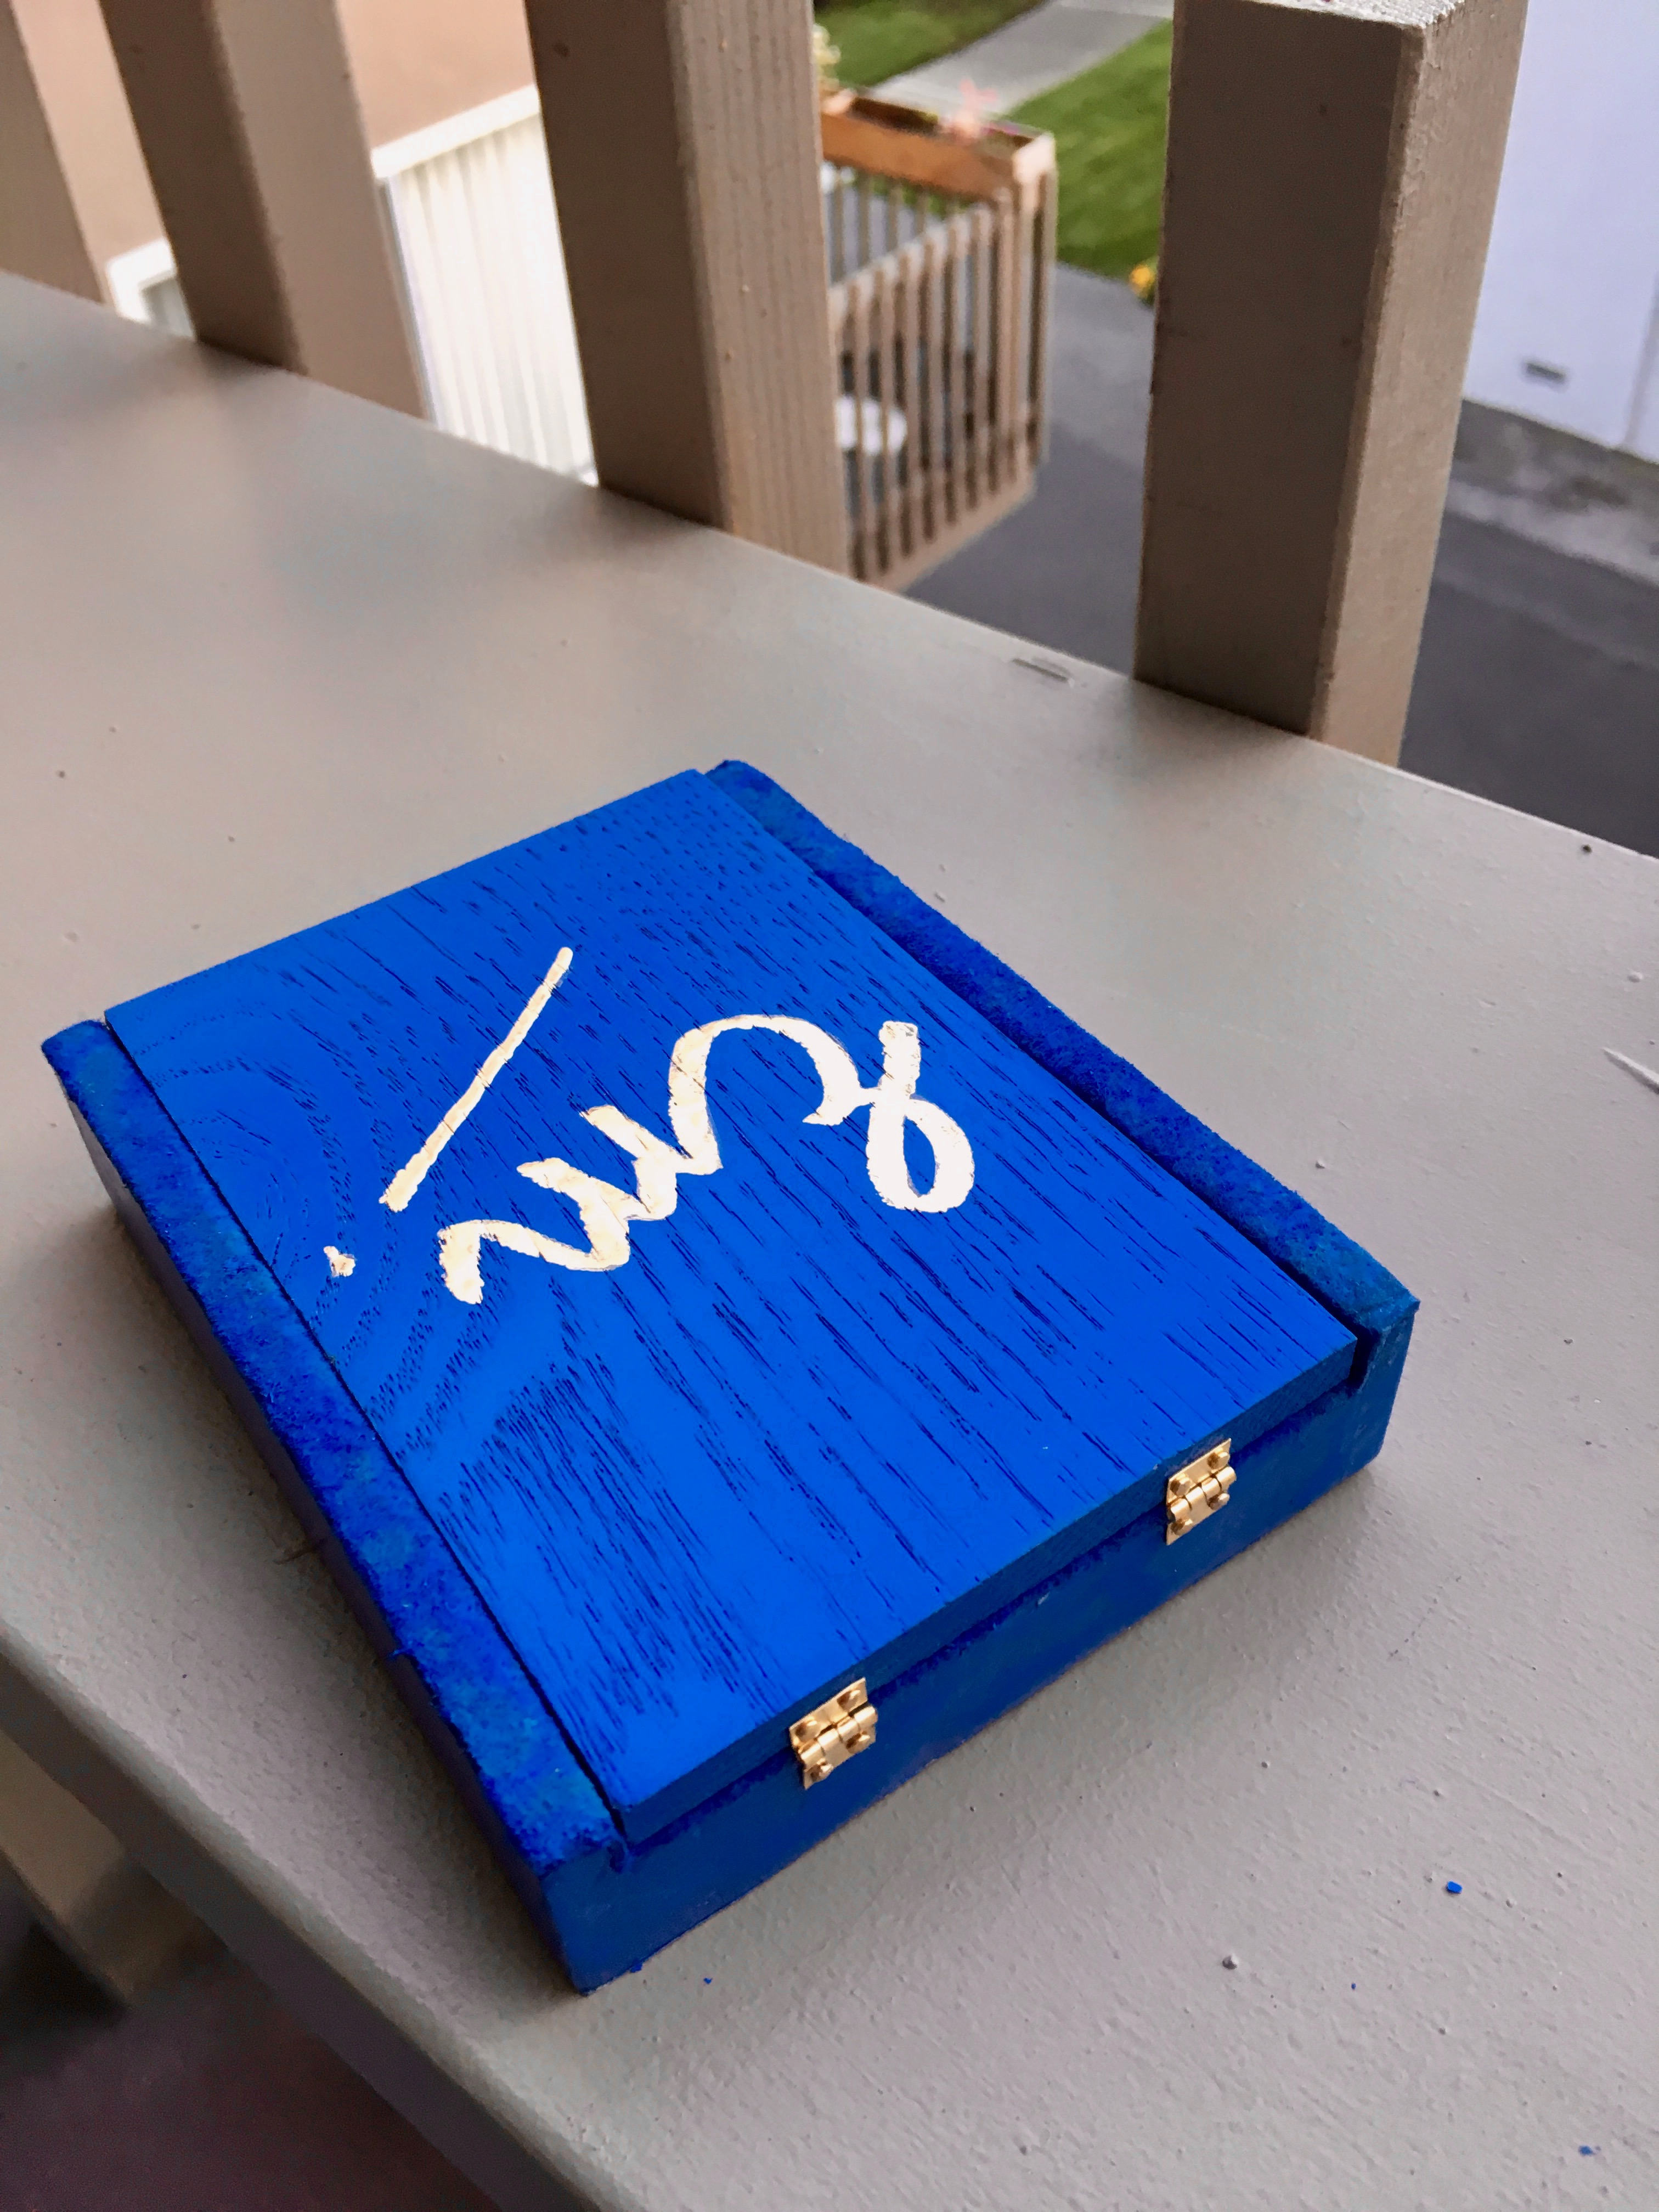 Picture of Wooden Box With Earrings: an Explosion of Blue